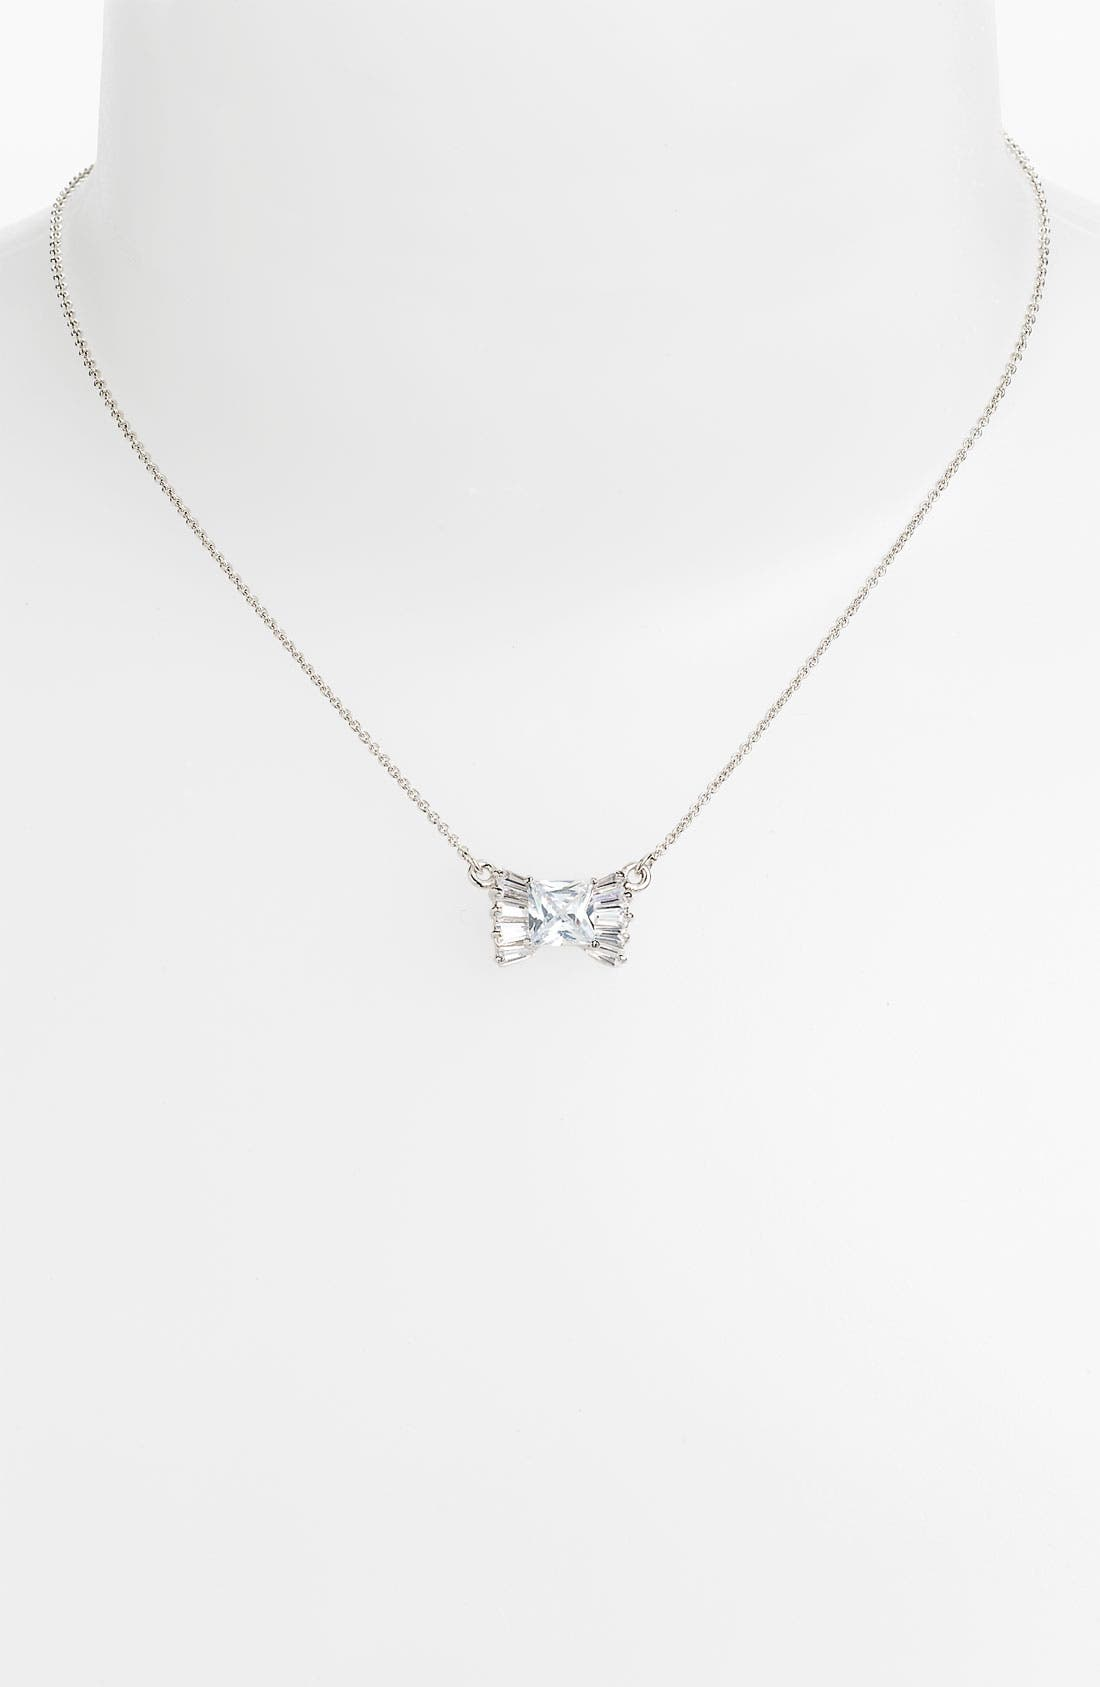 Main Image - kate spade new york 'le soir' bow pendant necklace